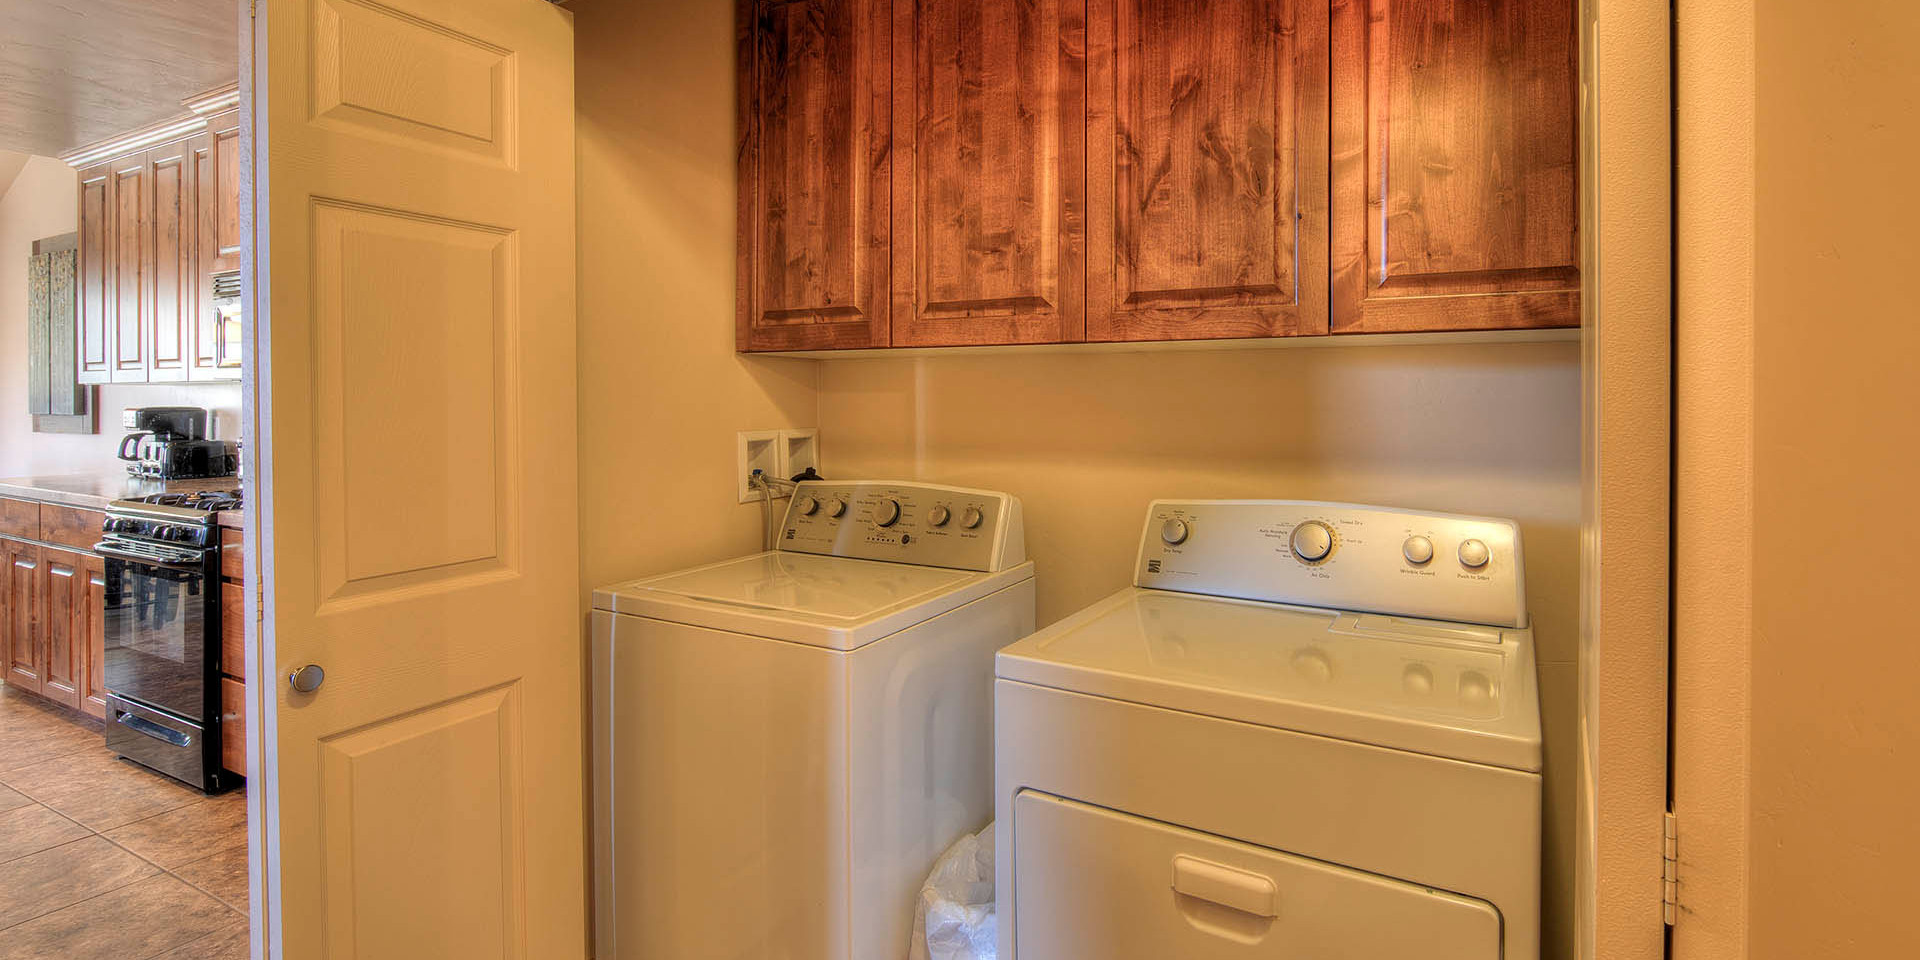 Spanish Trail Arena Vacation Rental Moab